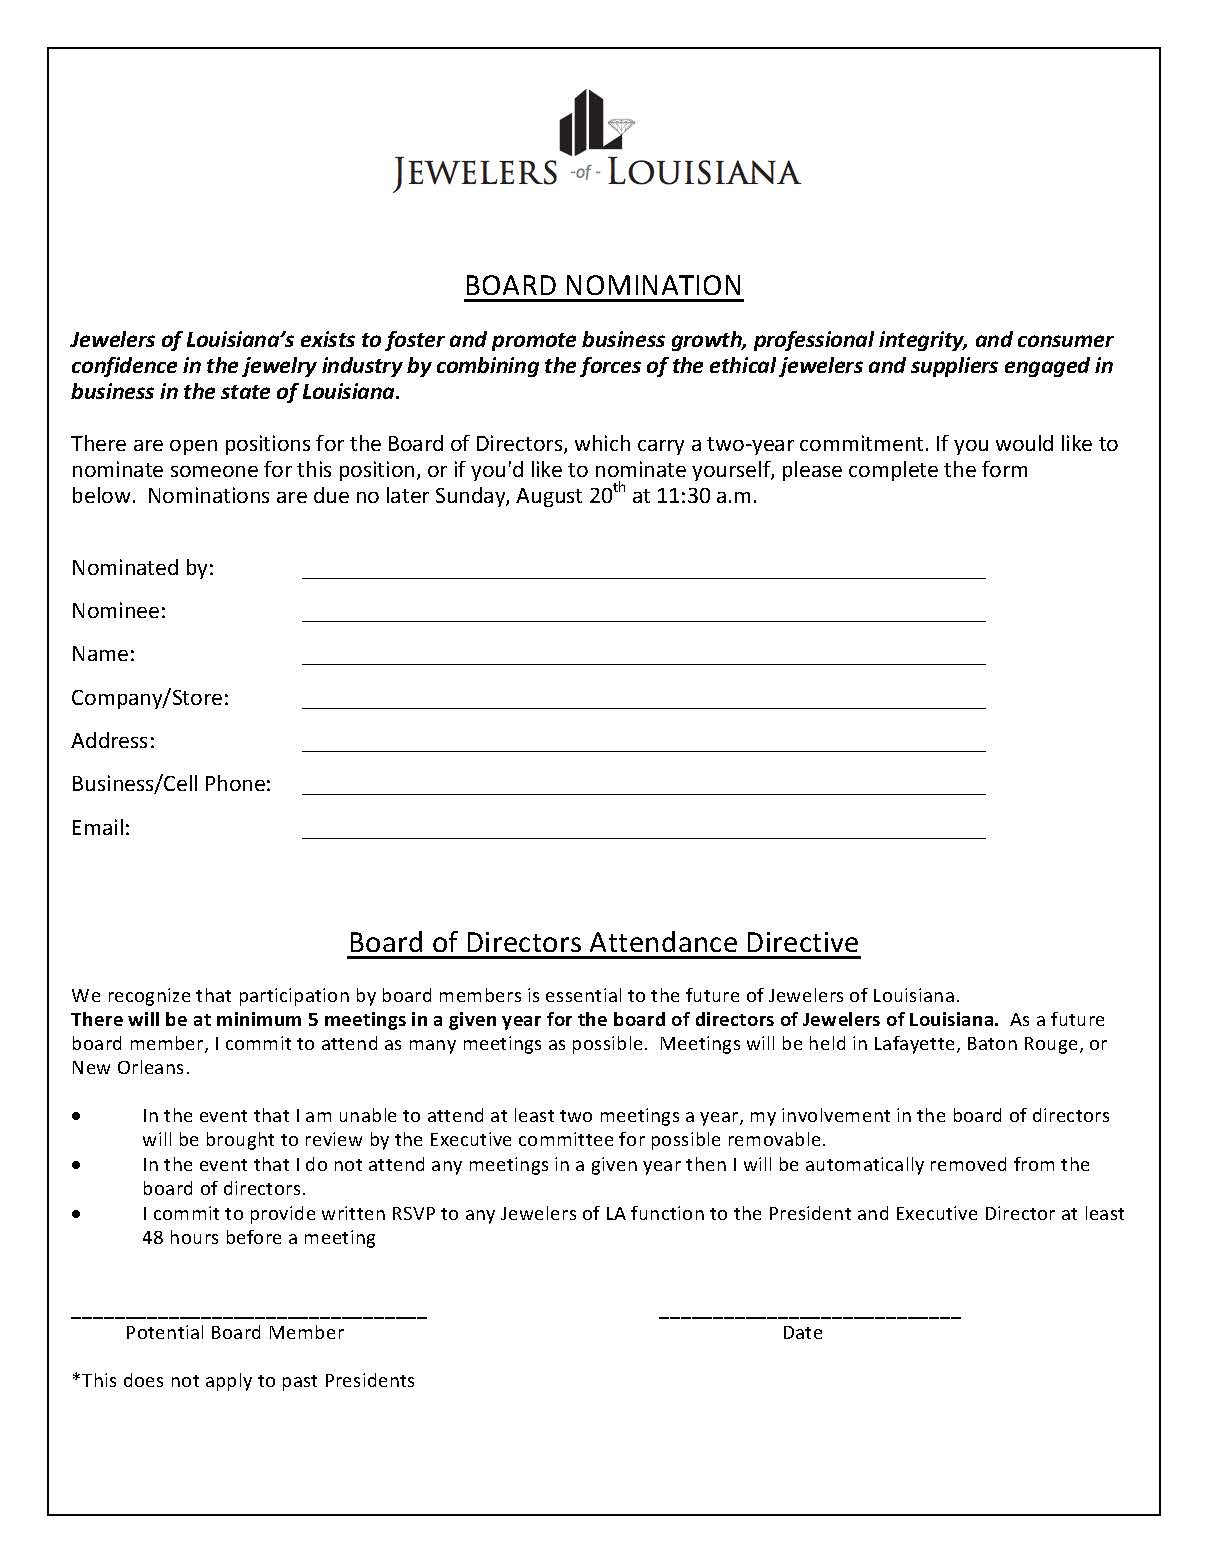 BOARD NOMINATION FORM AND POLICY